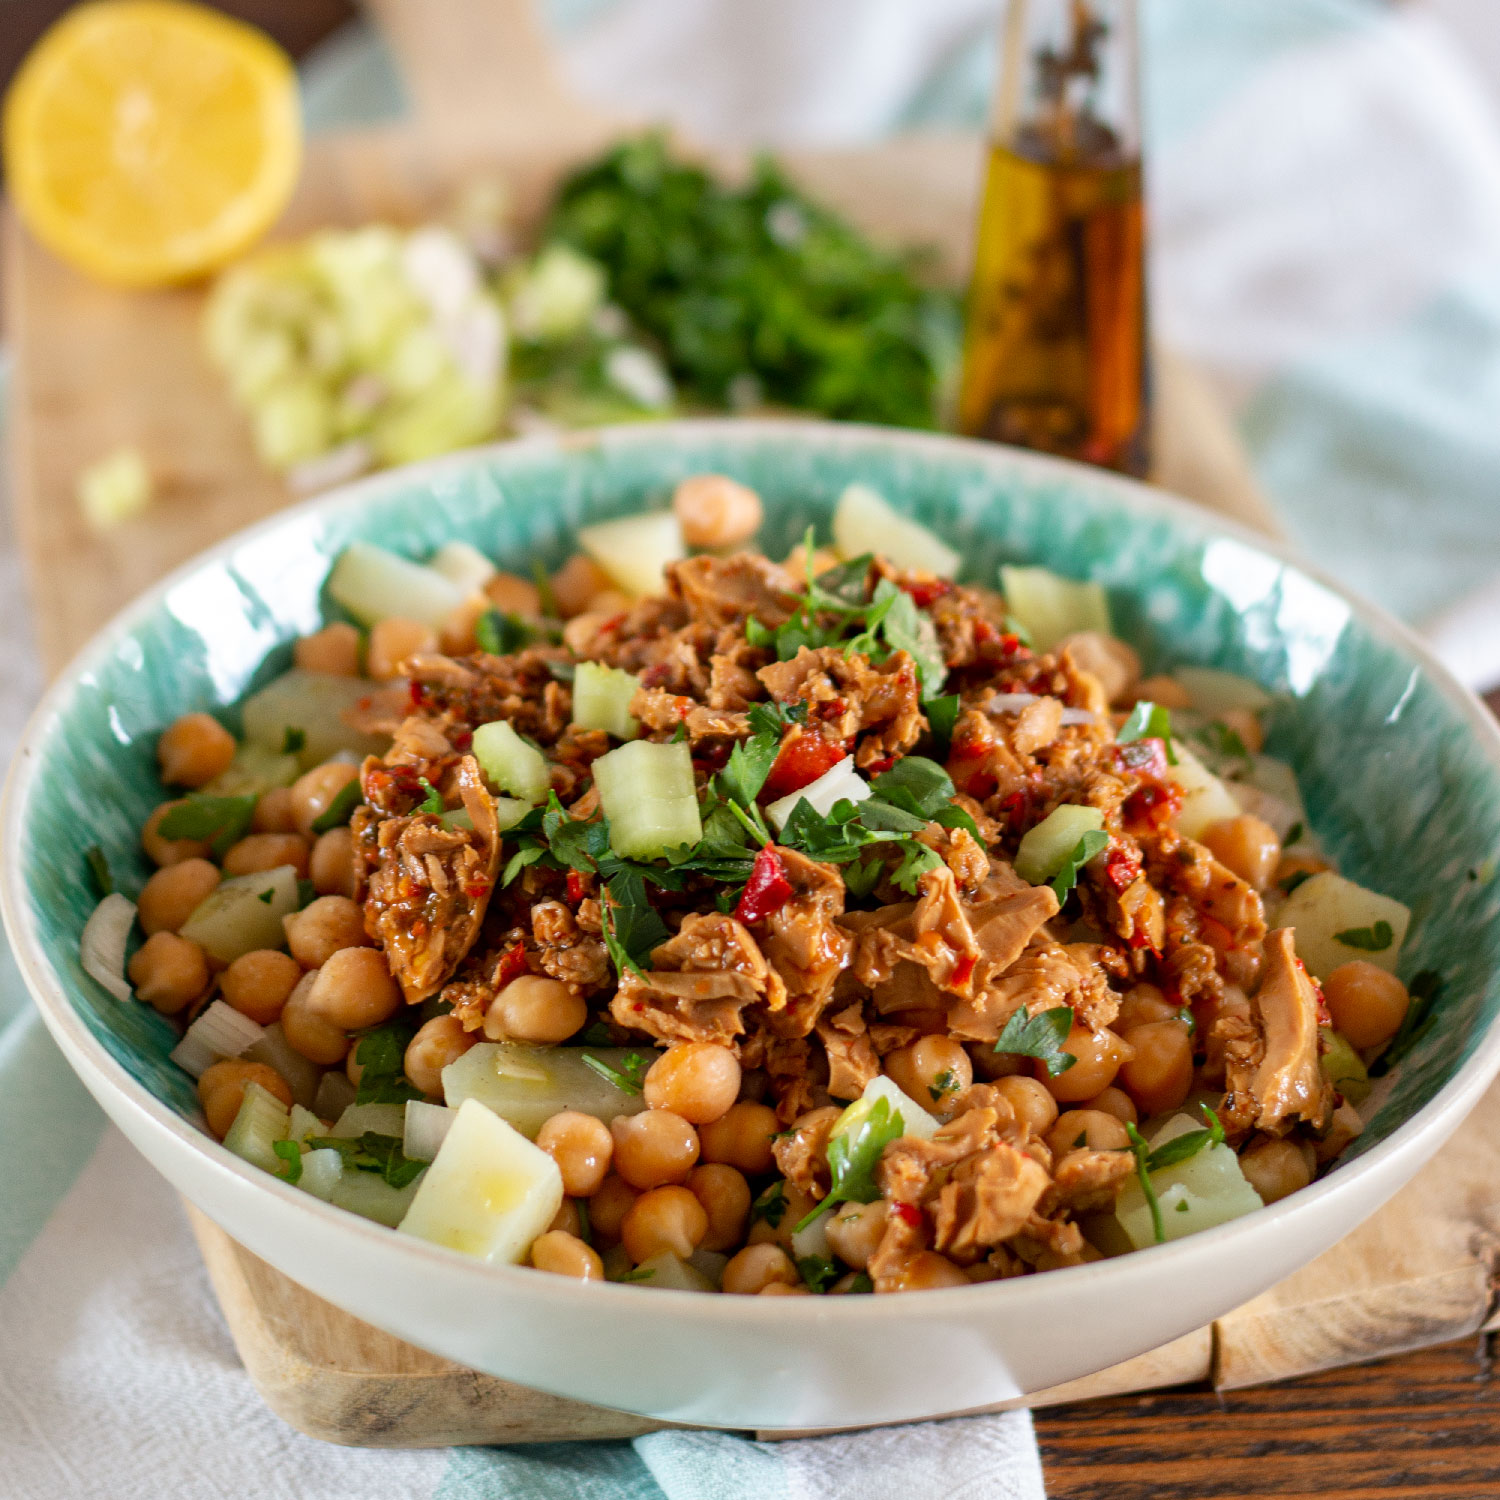 Warm Tuna Chickpea Salad